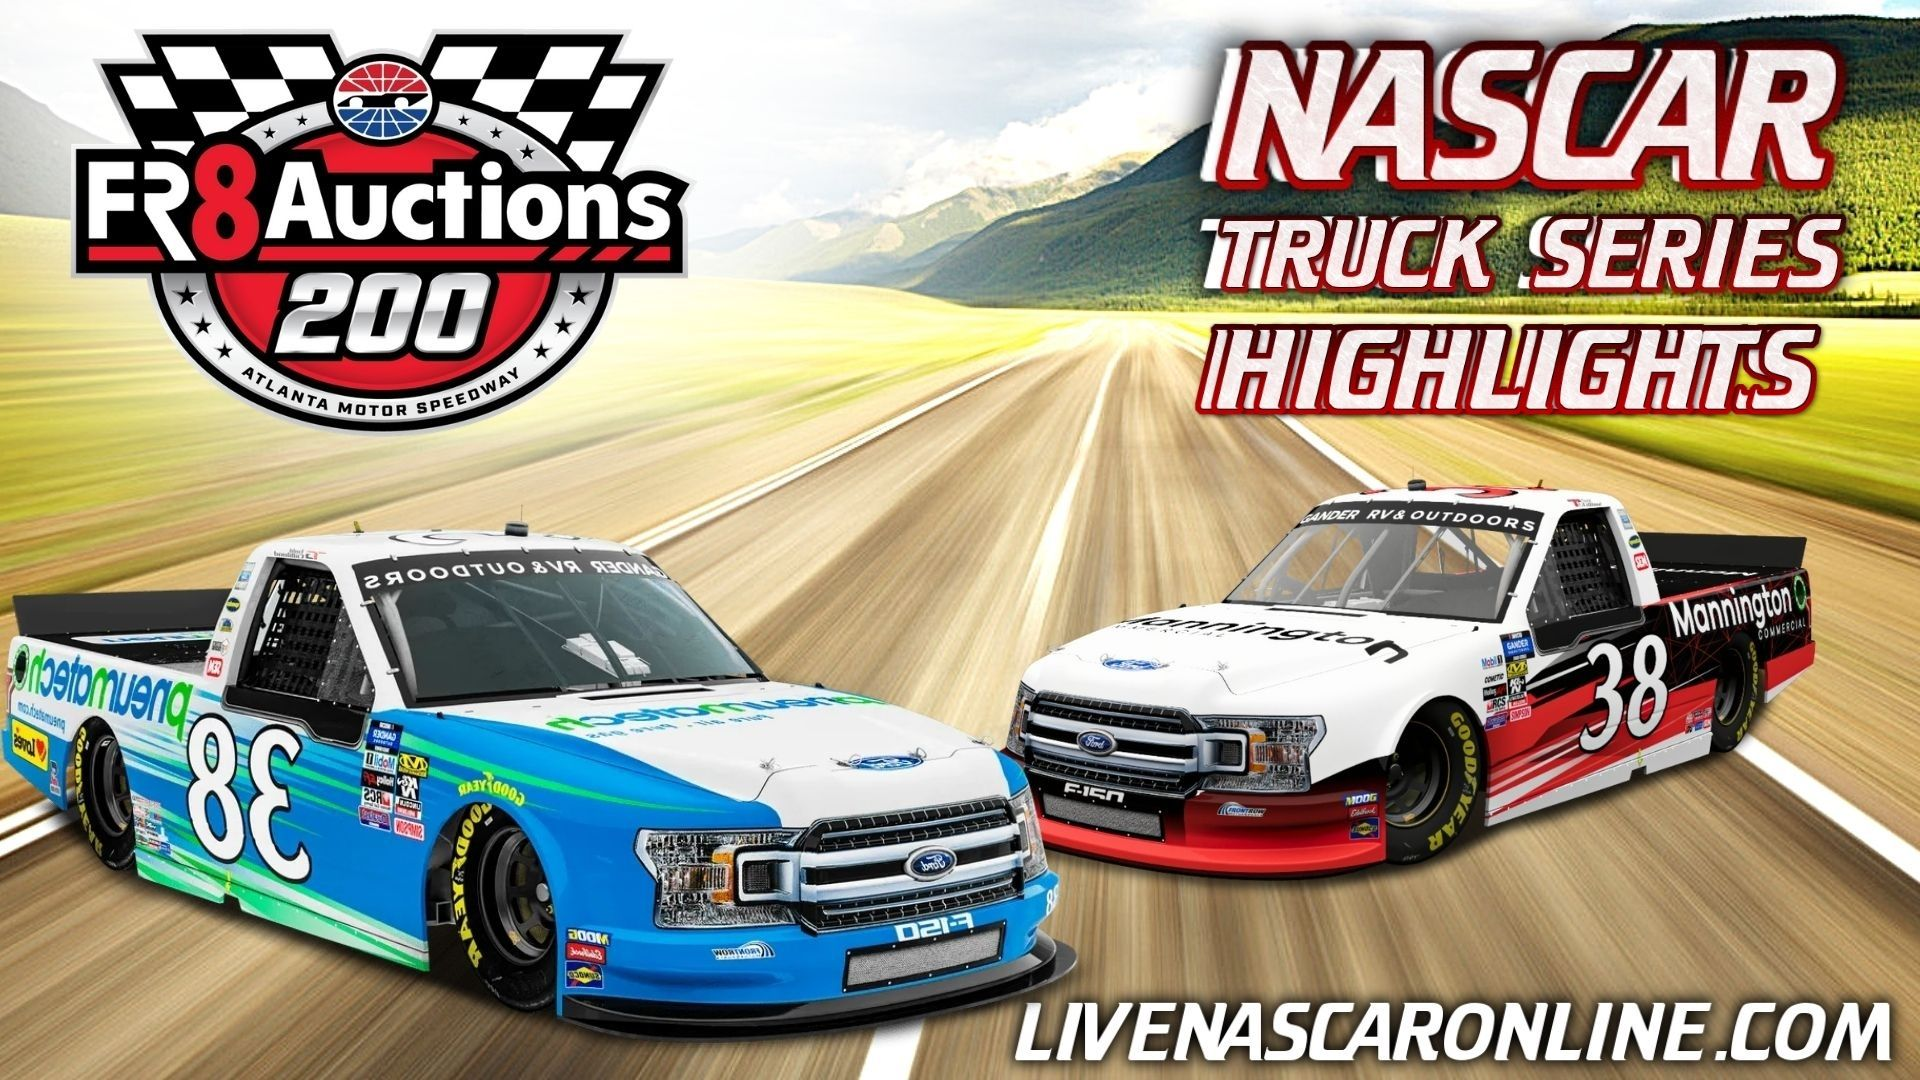 Fr8Auctions 200 Highlights 2021 Nascar Truck Series